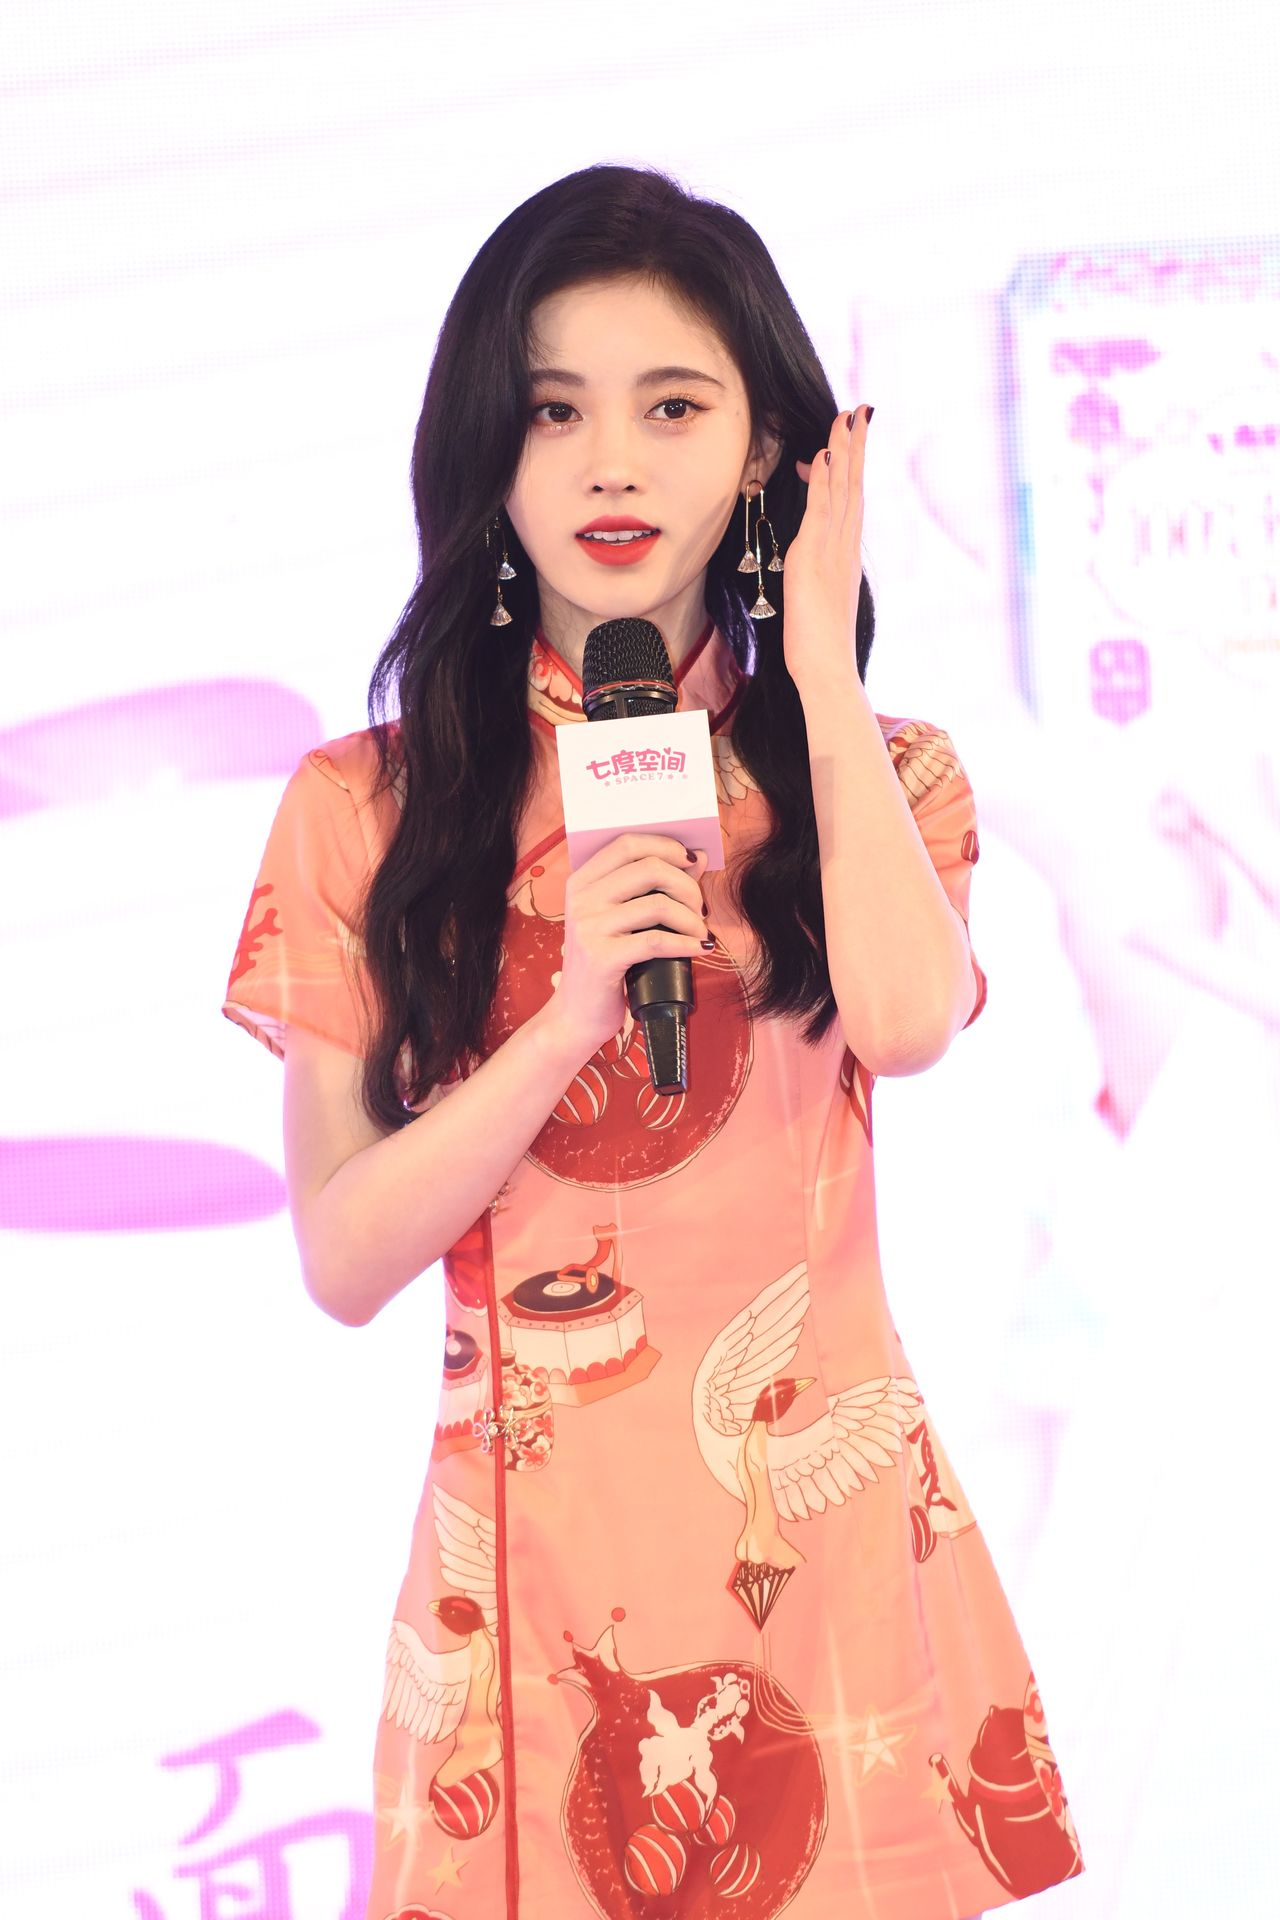 Ghostly Pale Asian Beauty Ju Jingyi Shows Her Tight Body - The Fappening!